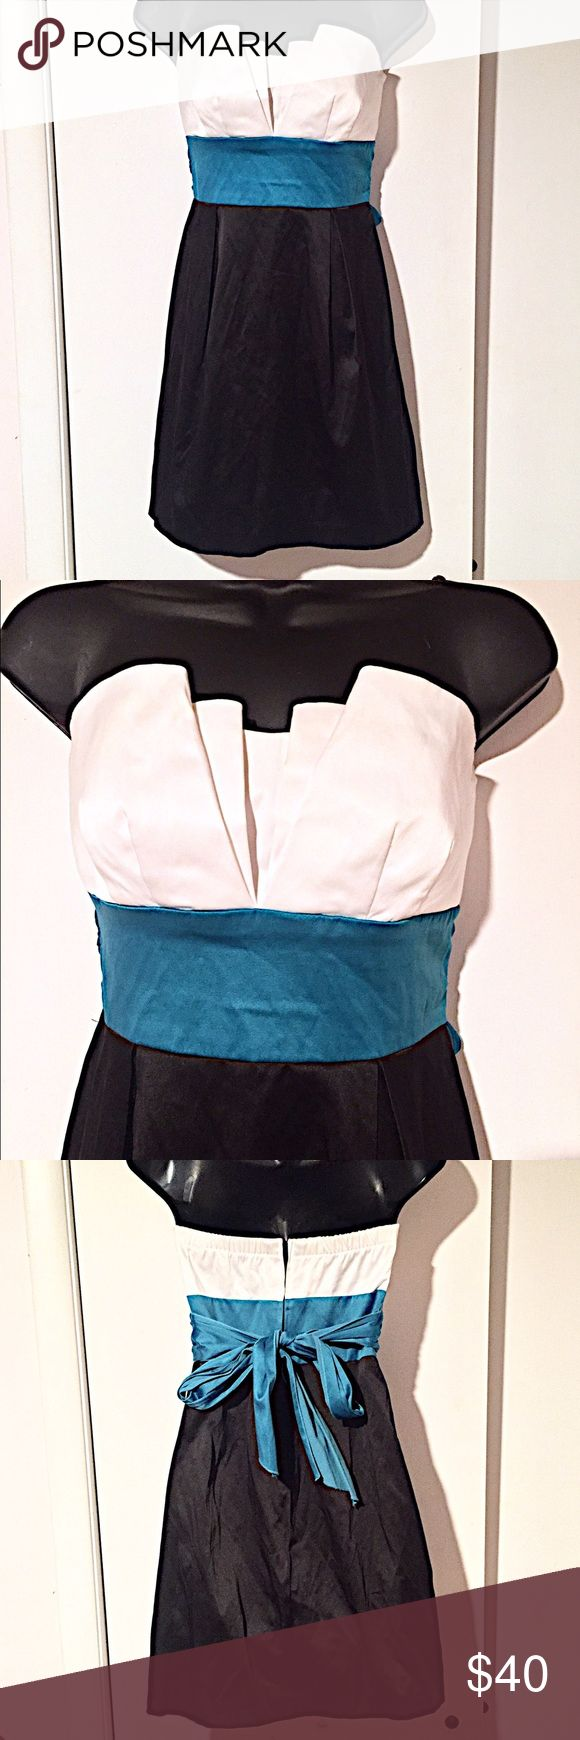 """🎉Strapless Party Dress🎉 Strapless party dress. White top with folded detail bust area, black bottom, and turquoise sash that ties in the back. Zip back closure with elastic throughout the top back area. Bust width 13"""" laying flat off the mannequin, can stretch to 17"""" from elastic. Length is 25"""". Only Worn Once! PERFECT CONDITION! Very comfortable and easy to wear! Teeze Me Dresses Strapless"""